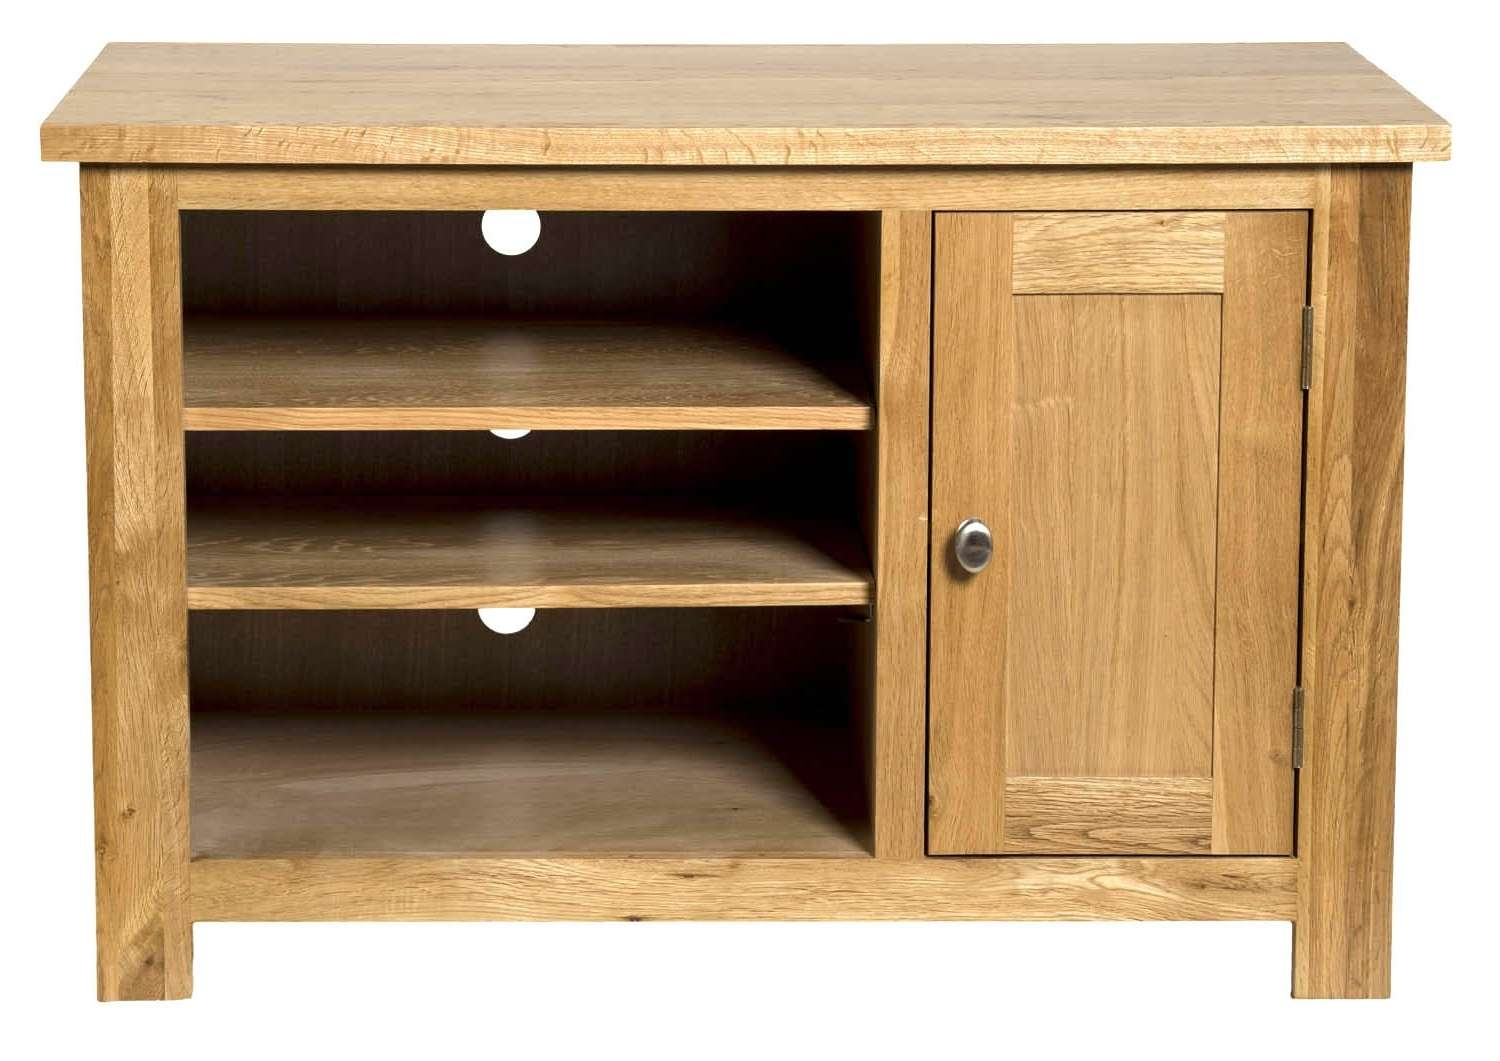 Waverly Oak Small Compact Tv Stand With Cabinet Storage | Hallowood In Small Oak Tv Cabinets (View 18 of 20)